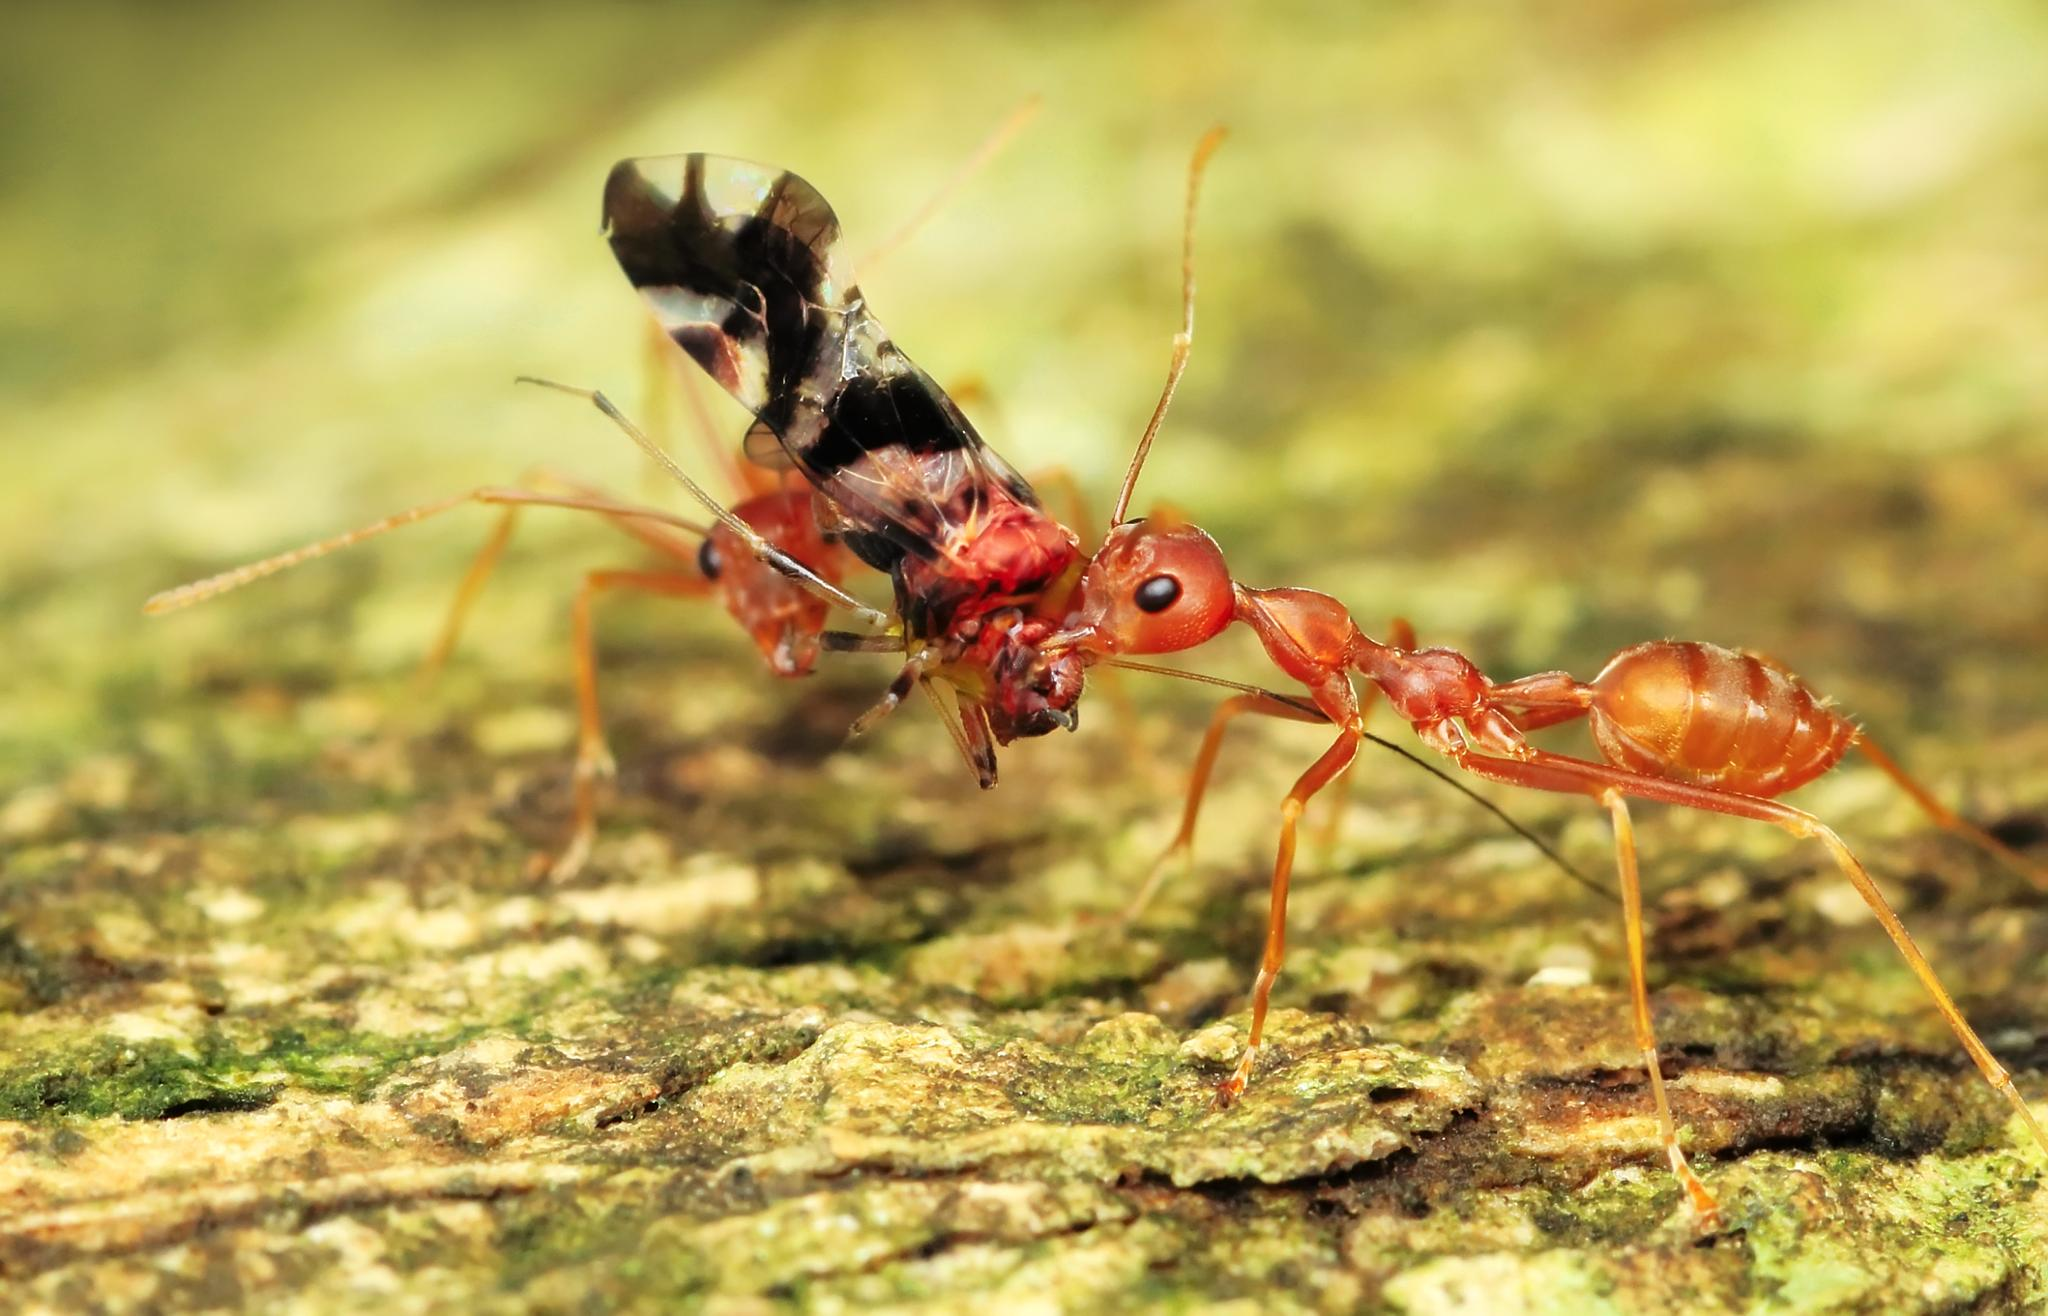 Red Ant by Ridwan Safoetra